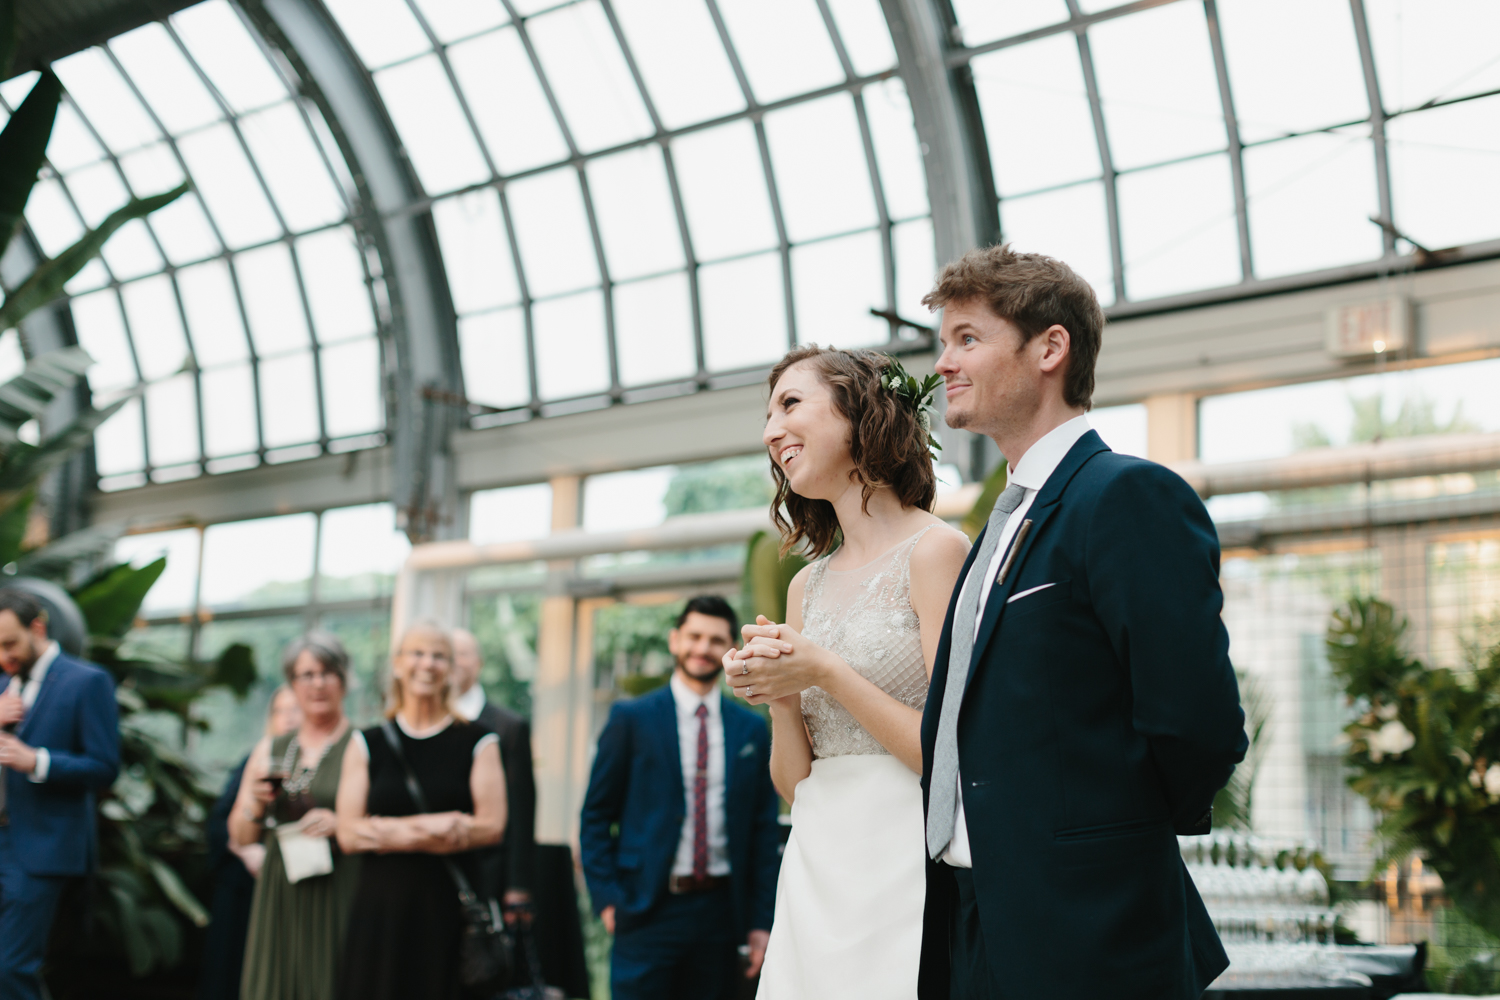 Chicago Garfield Park Conservatory Wedding by Northern Michigan Photographer Mae Stier-075.jpg